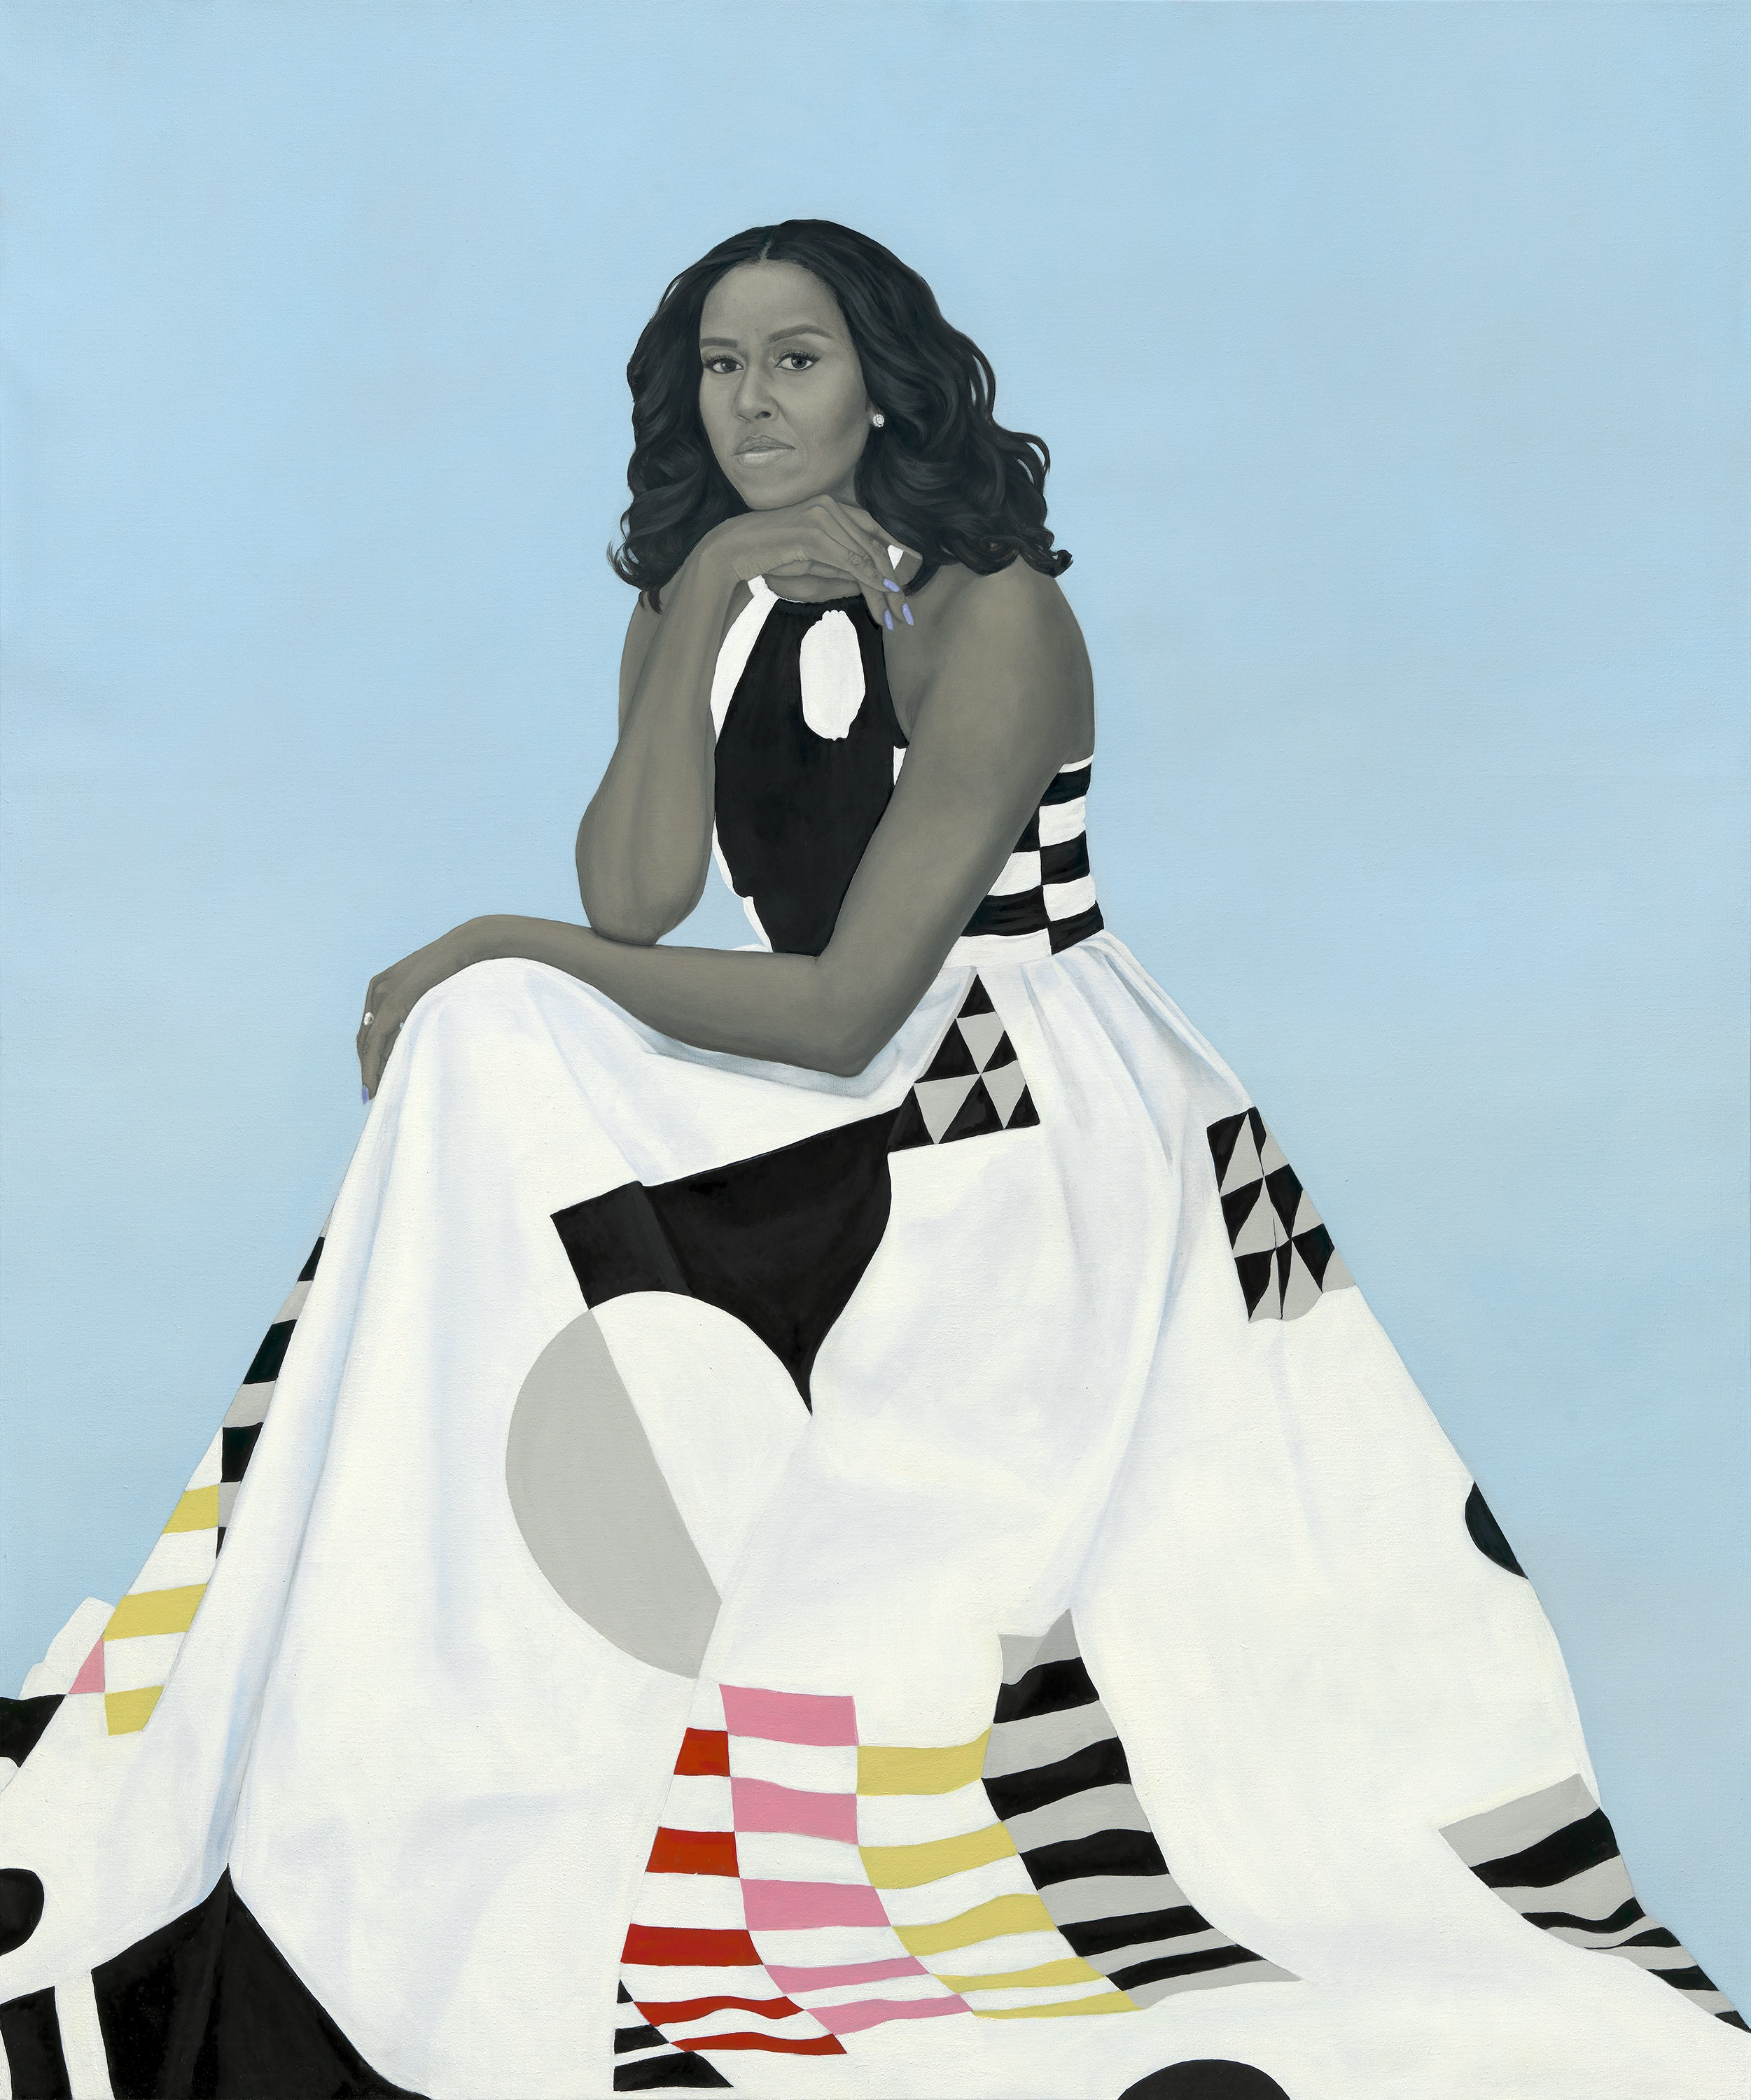 _Michelle LaVaughn Robinson Obama_ by Amy Sherald, oil on linen, 2018. National Portrait Gallery, Smithsonian Institution. The National Portrait Gallery is grateful to the following lead donors for their support of the Obama portraits: Kate Capshaw and Steven Spielberg; Judith Kern and Kent Whealy; Tommie L. Pegues and Donald A. Capoccia.